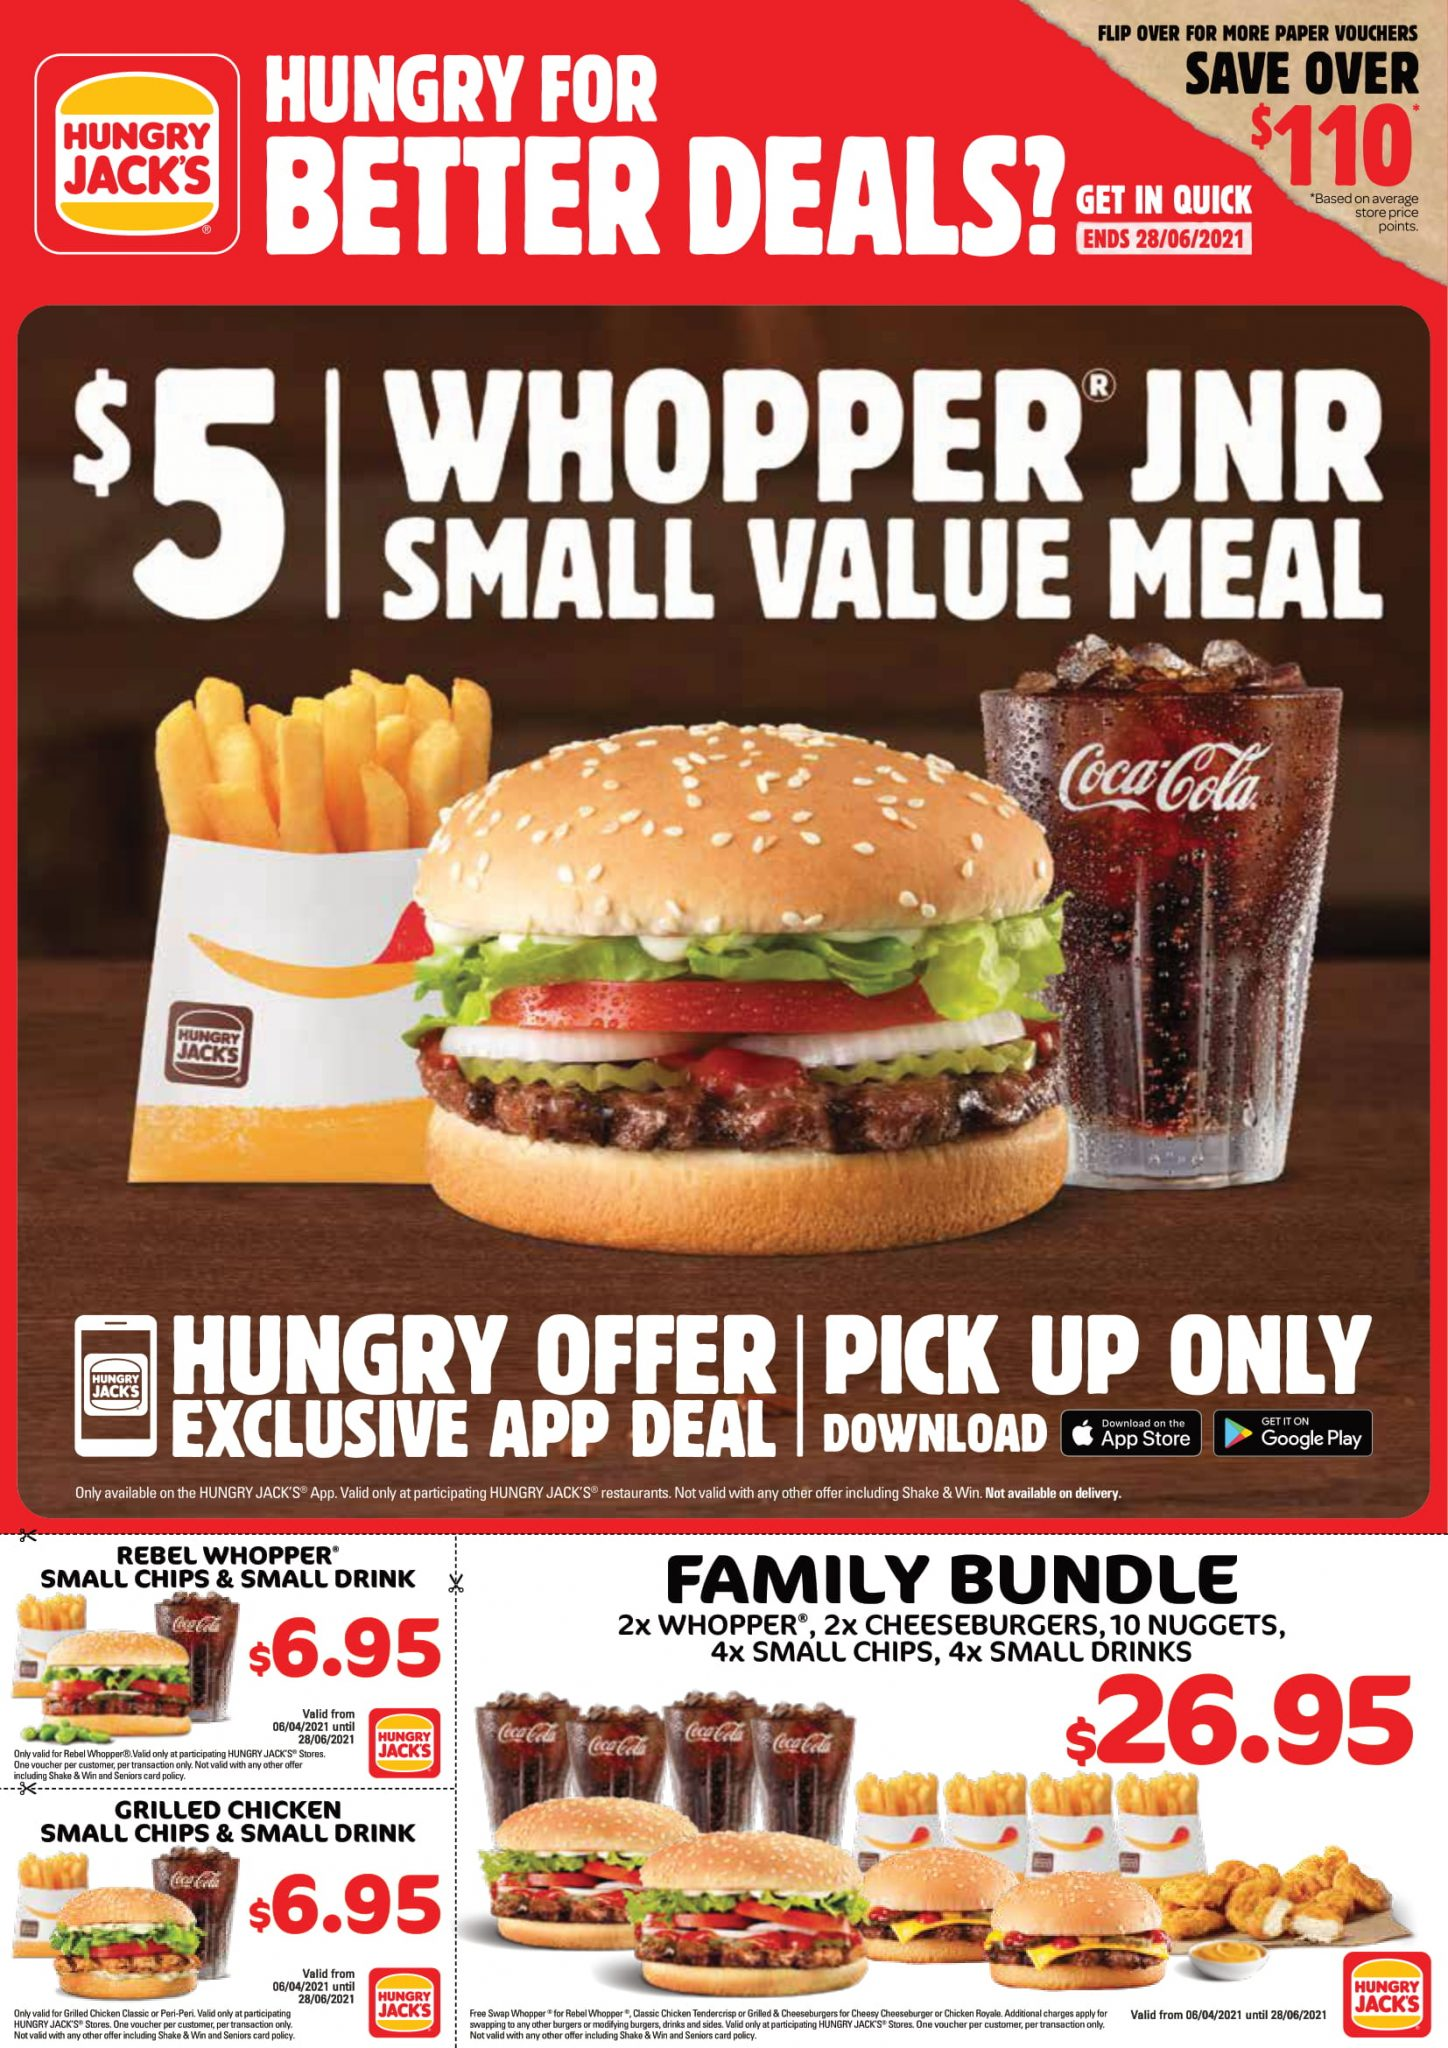 Hungry Jacks Vouchers & Deals → May 2021